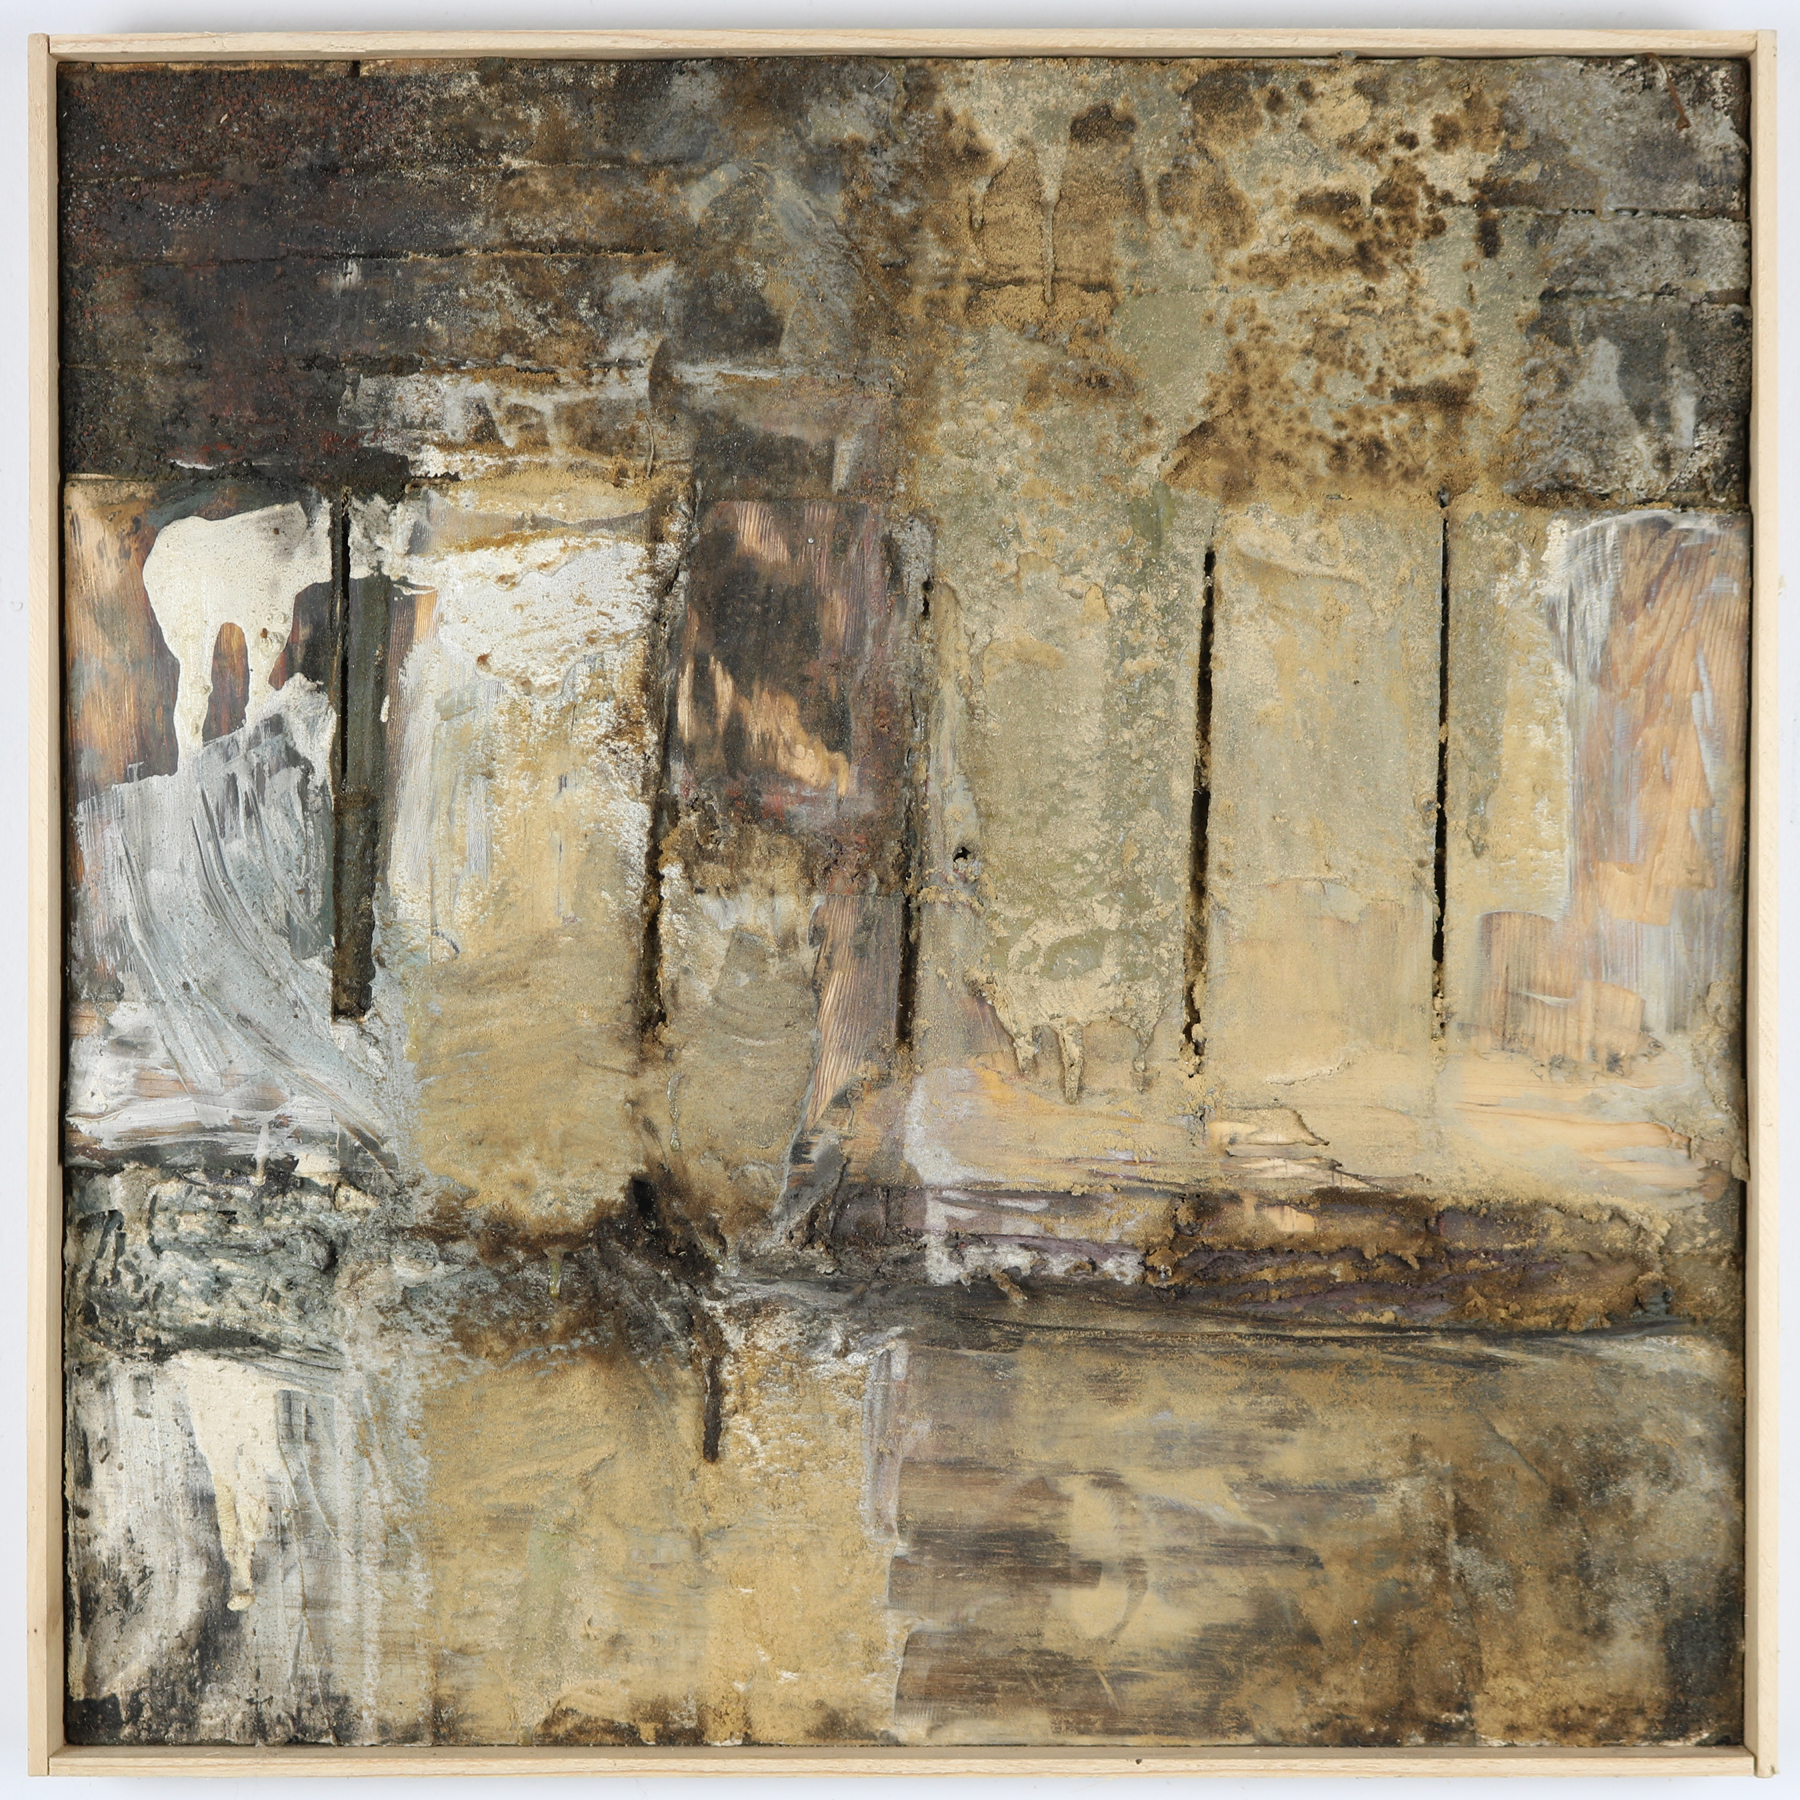 Leslie Zelamsky,  What Remains, Mixed media, 24x24